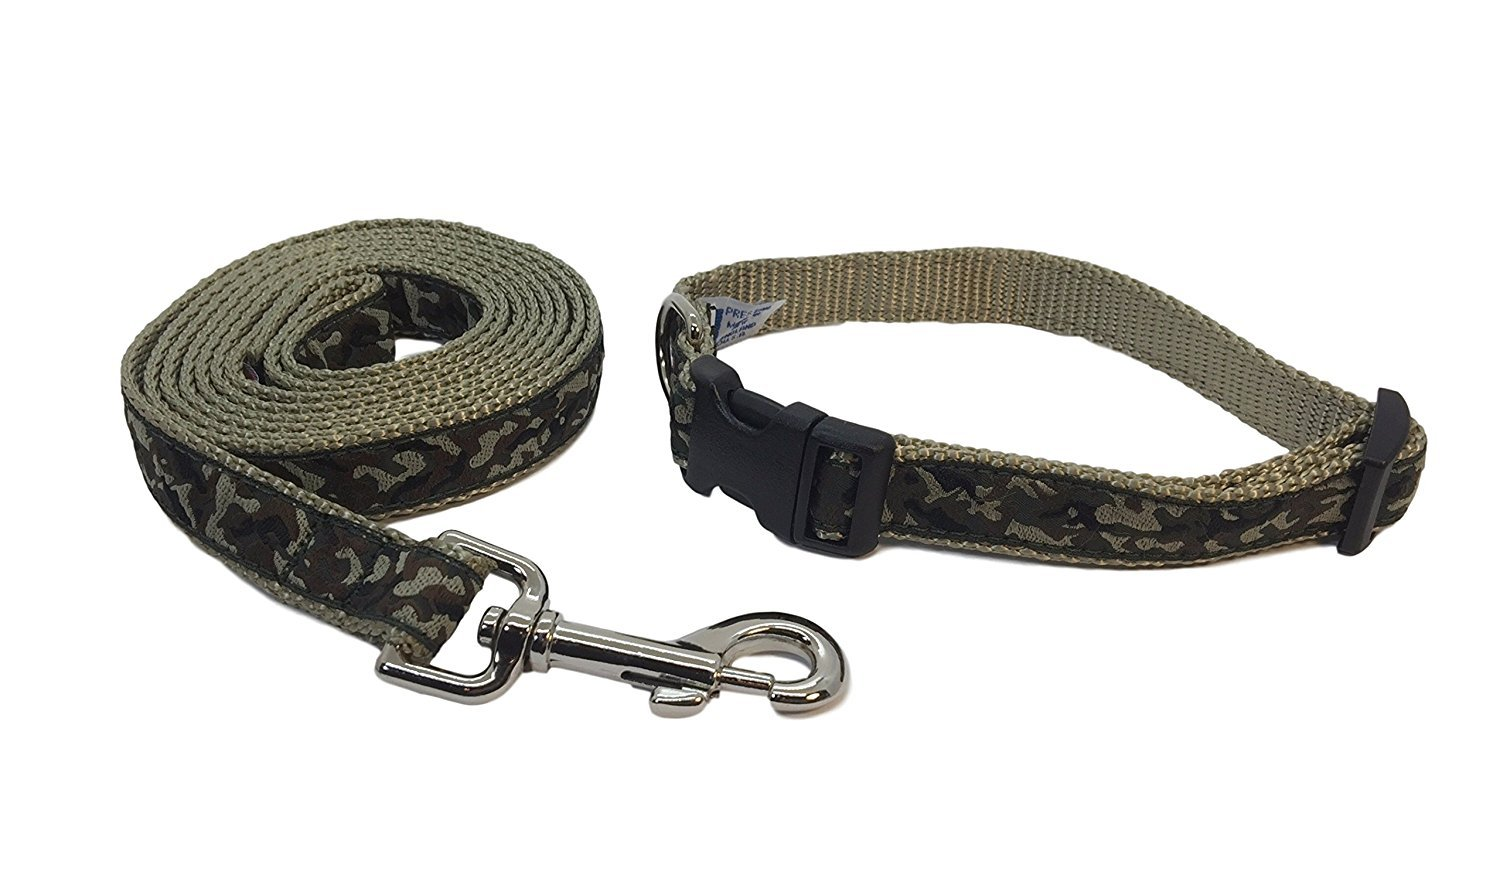 Extra Small Preston Camouflage Dog Collar and Leash Set Green and Brown Camo on Tan Webbing (Extra Small)